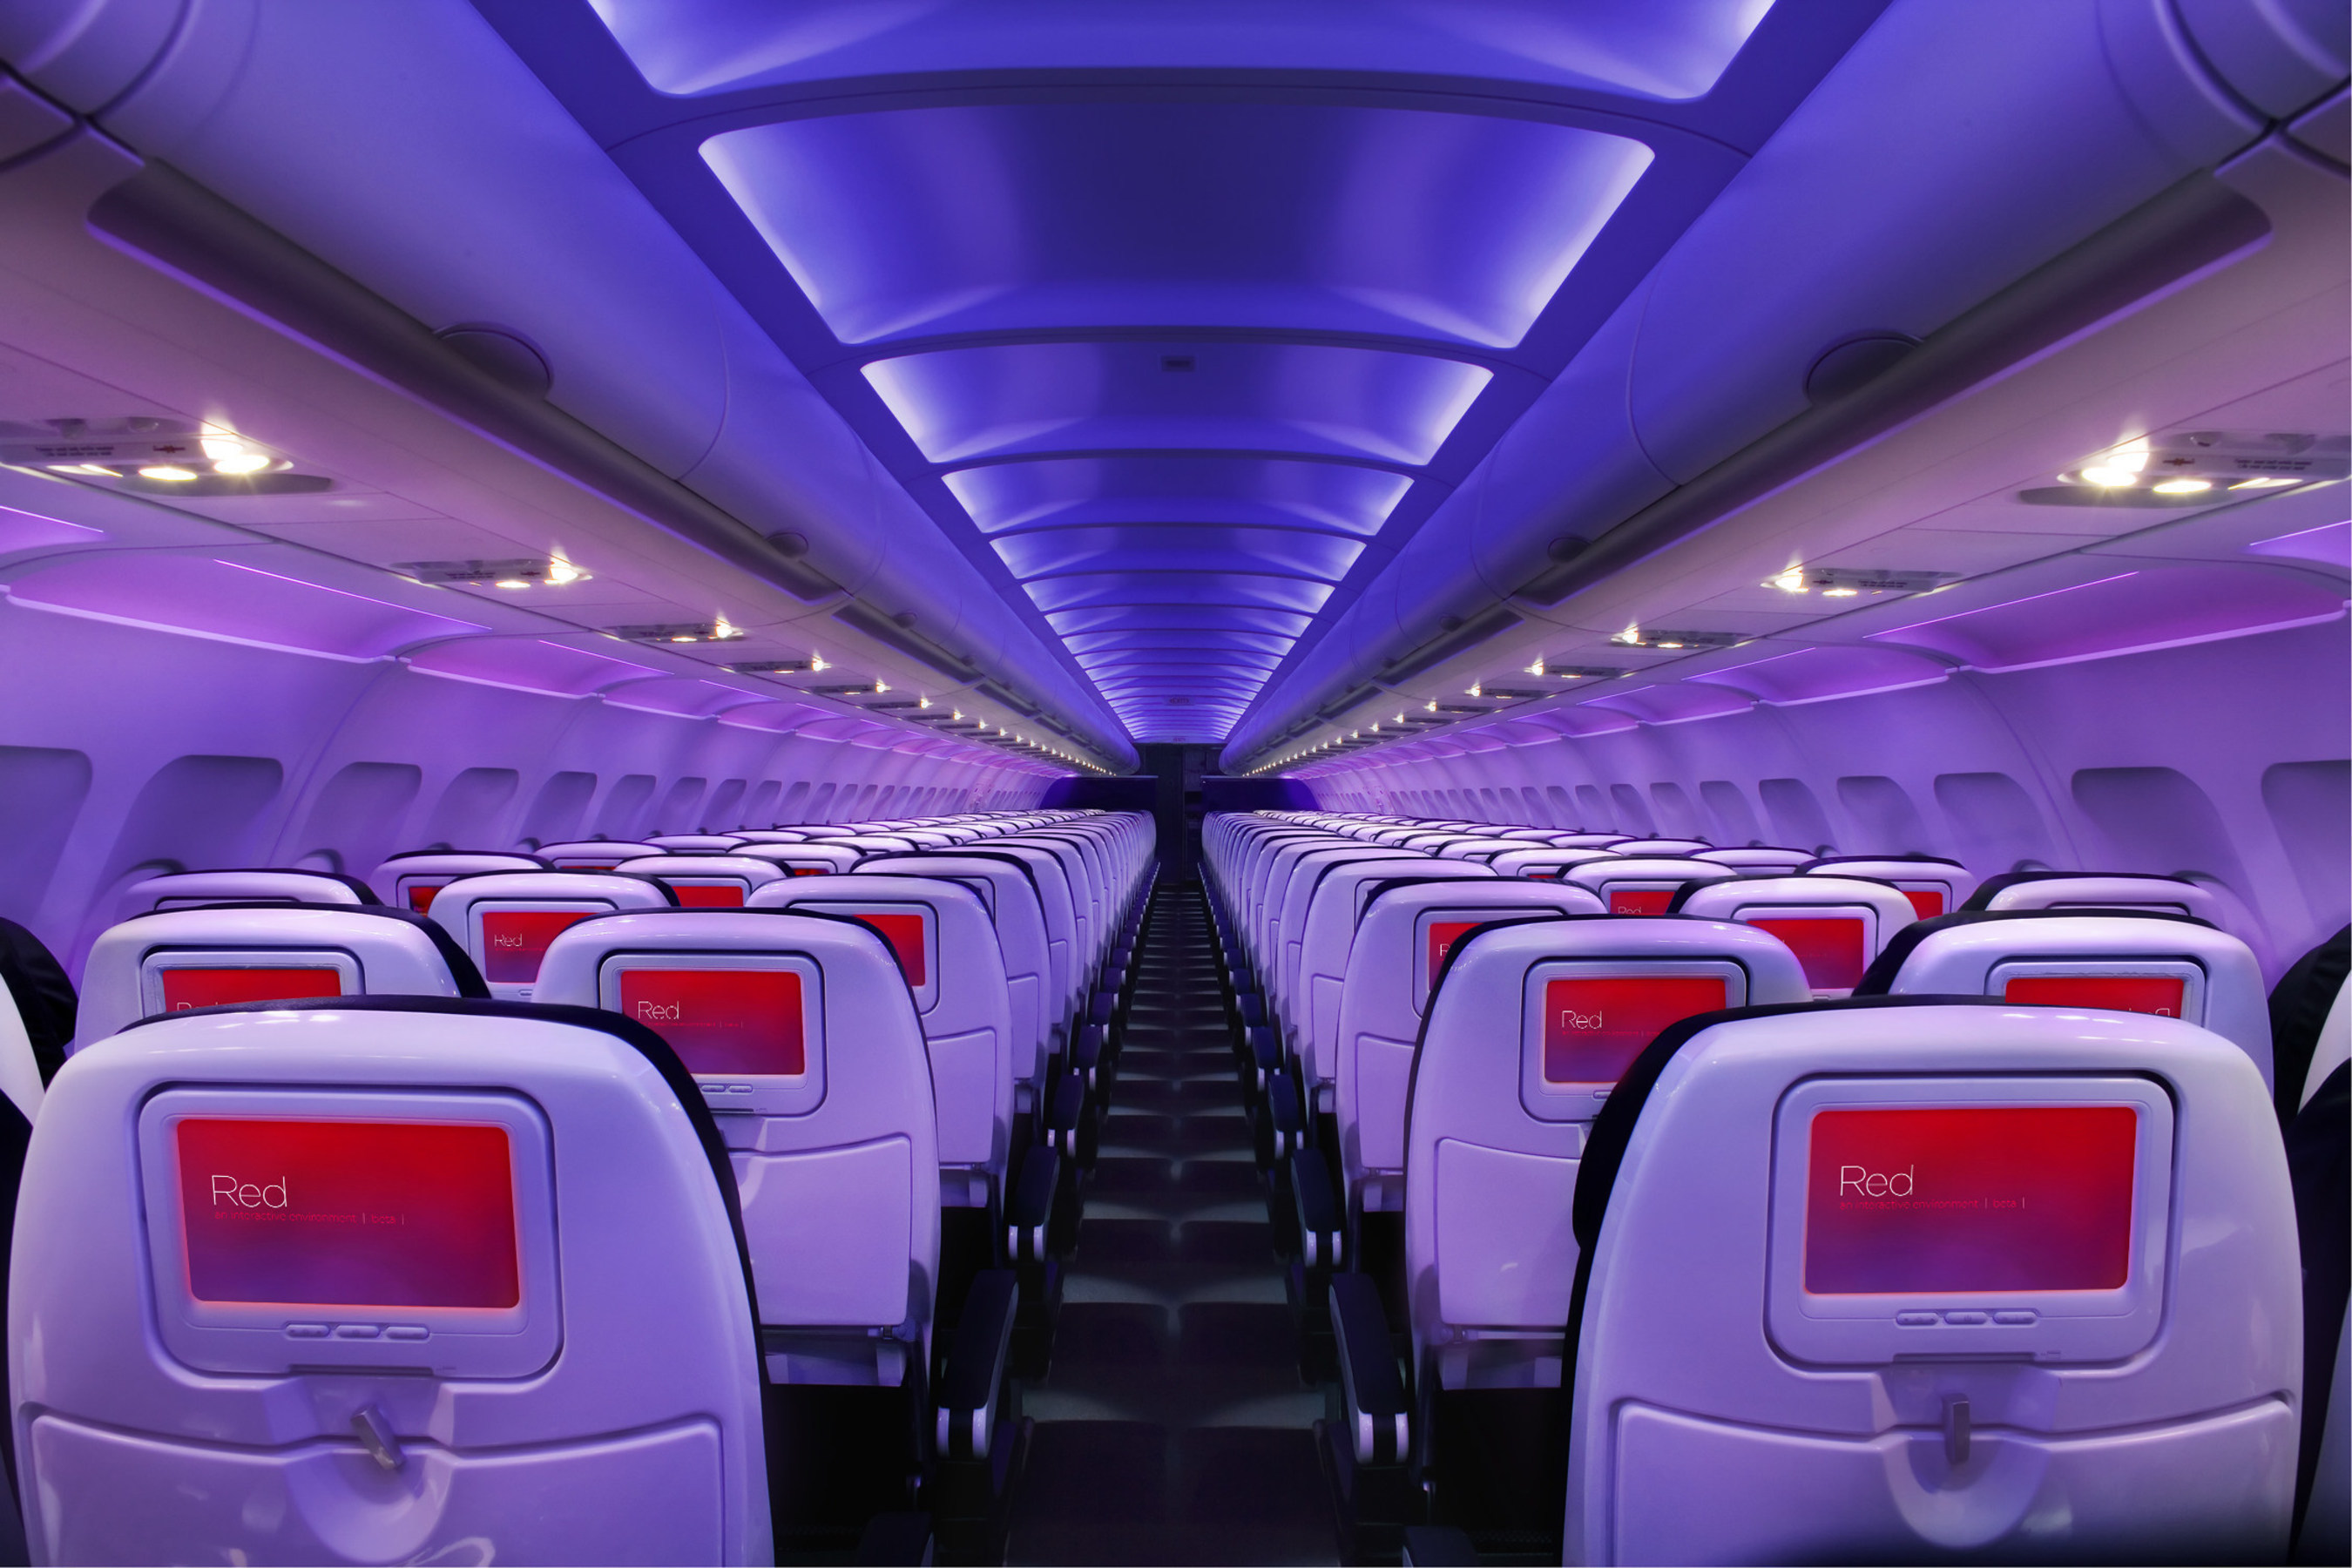 Virgin America Named Top Domestic Airline In The Travel + Leisure World's Best Awards Survey